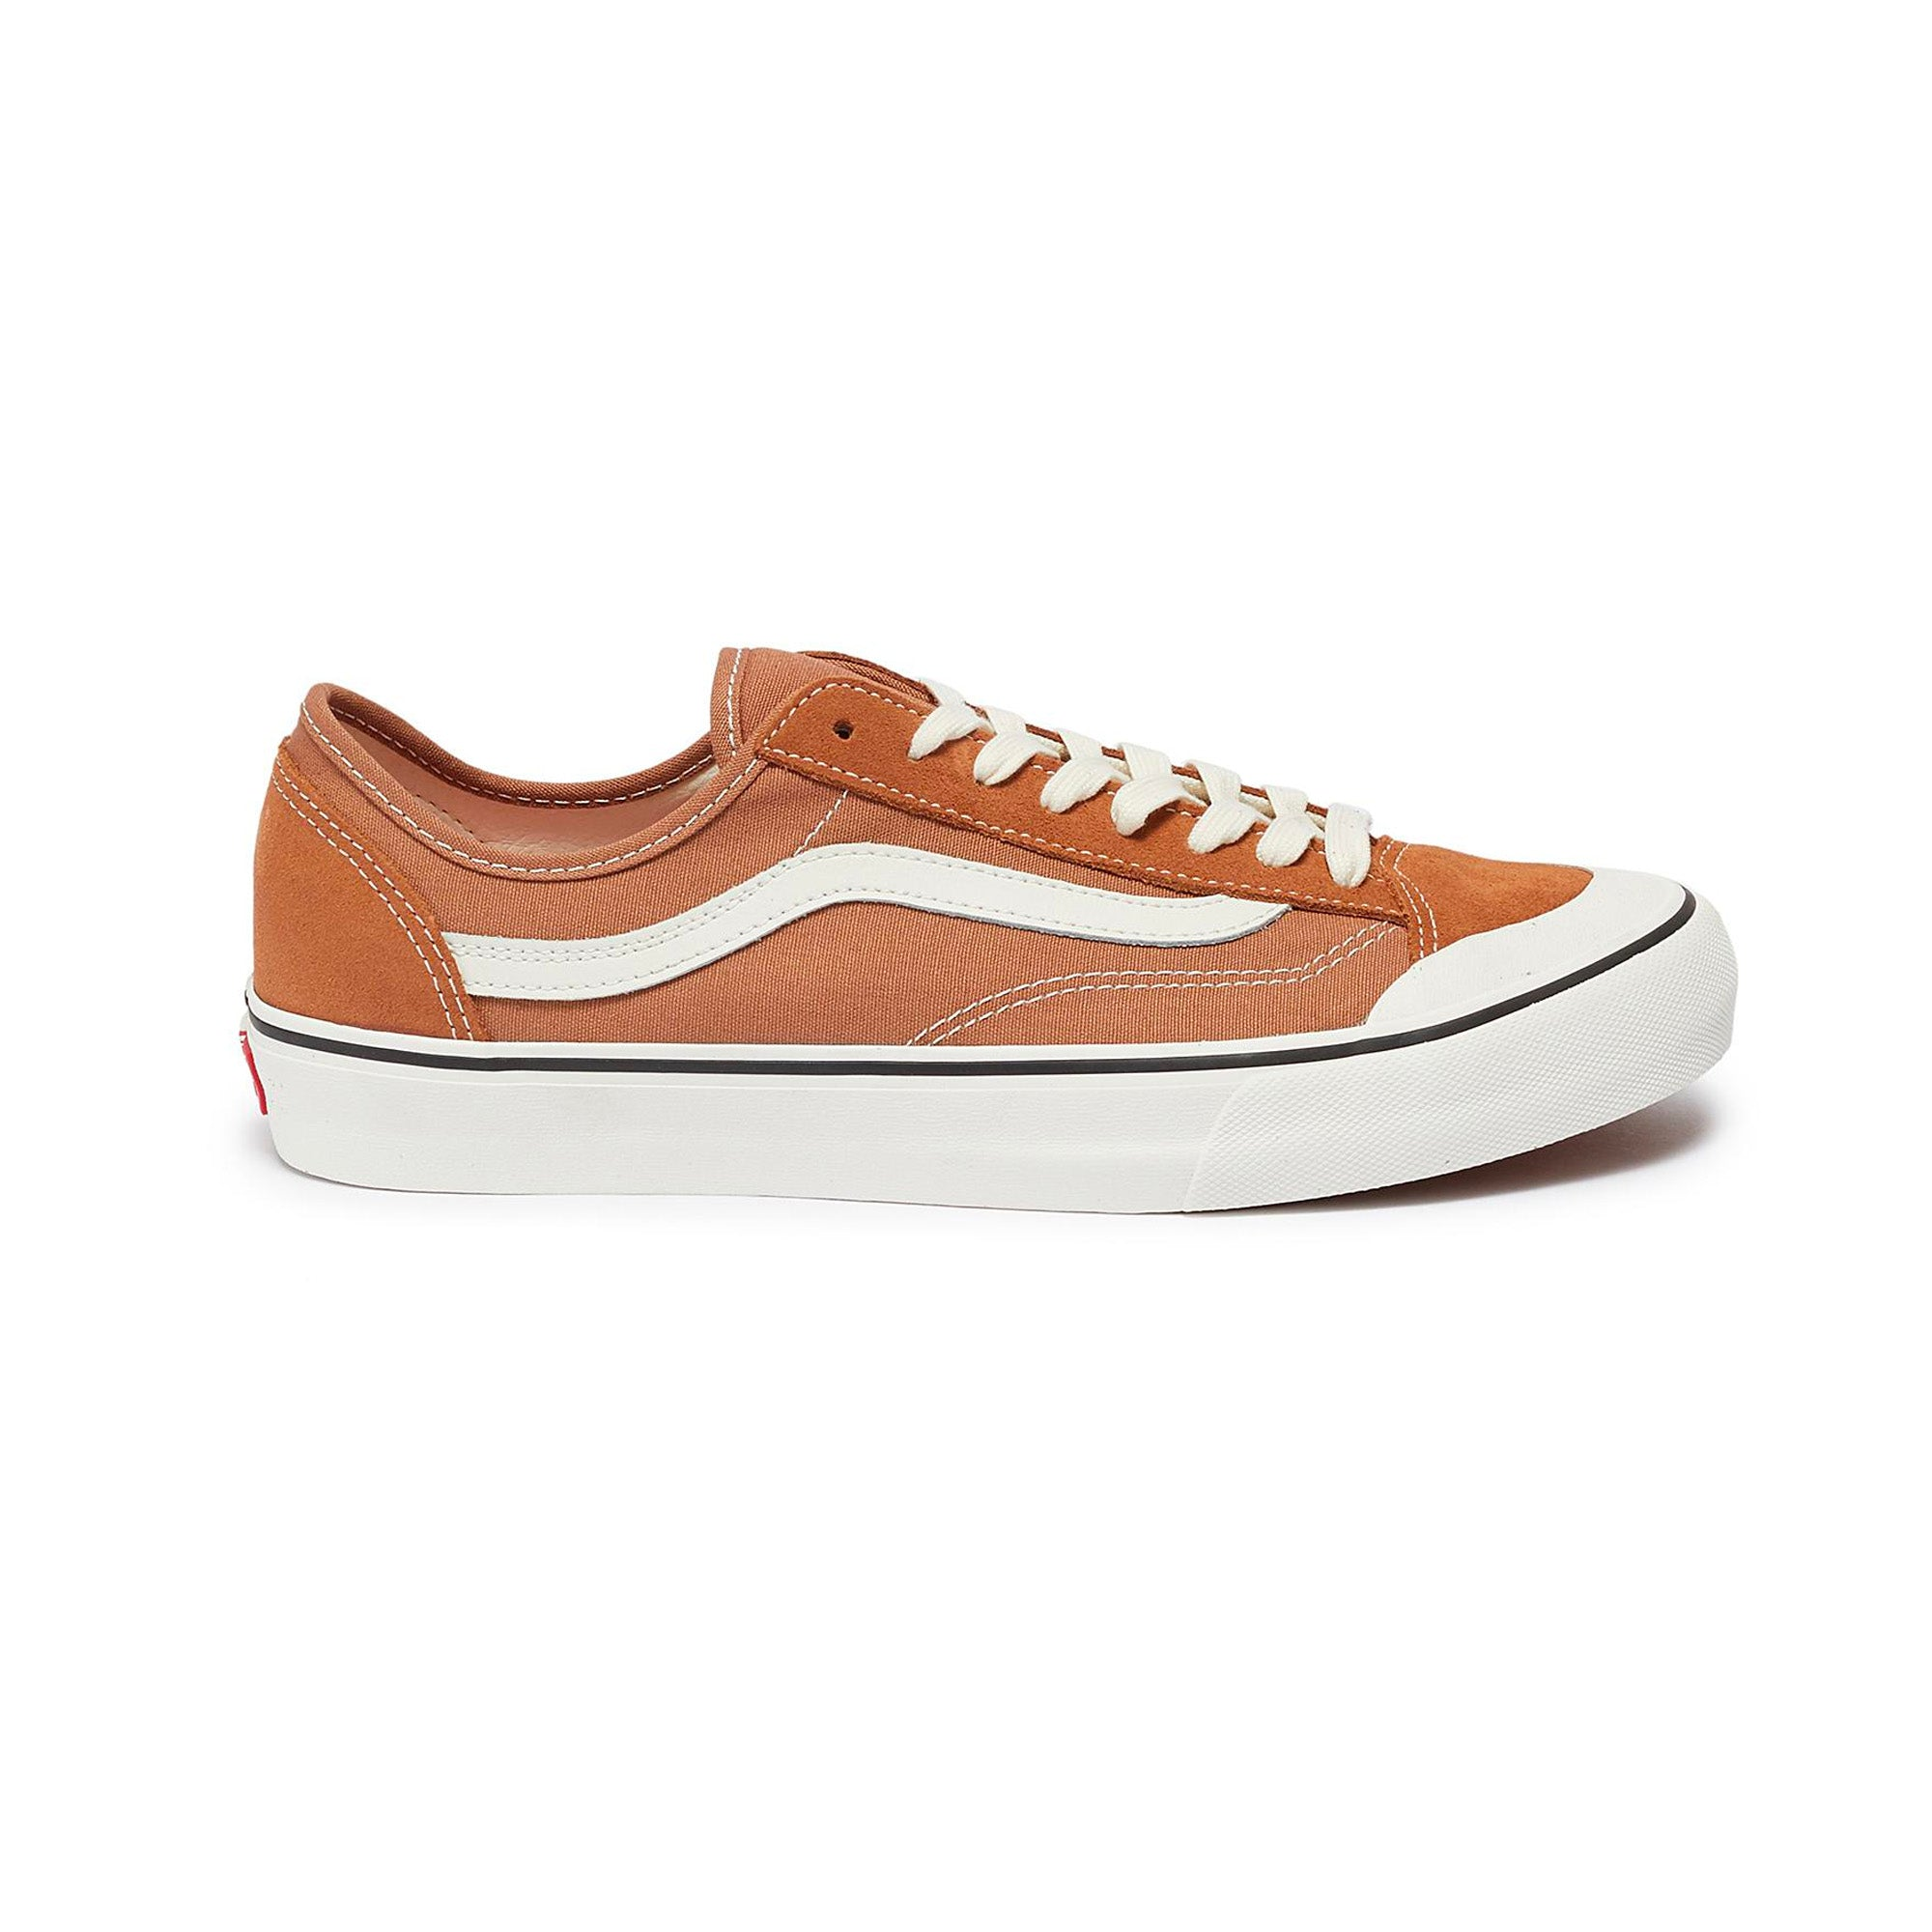 Vans Style 36 Decon SF Men's Shoes